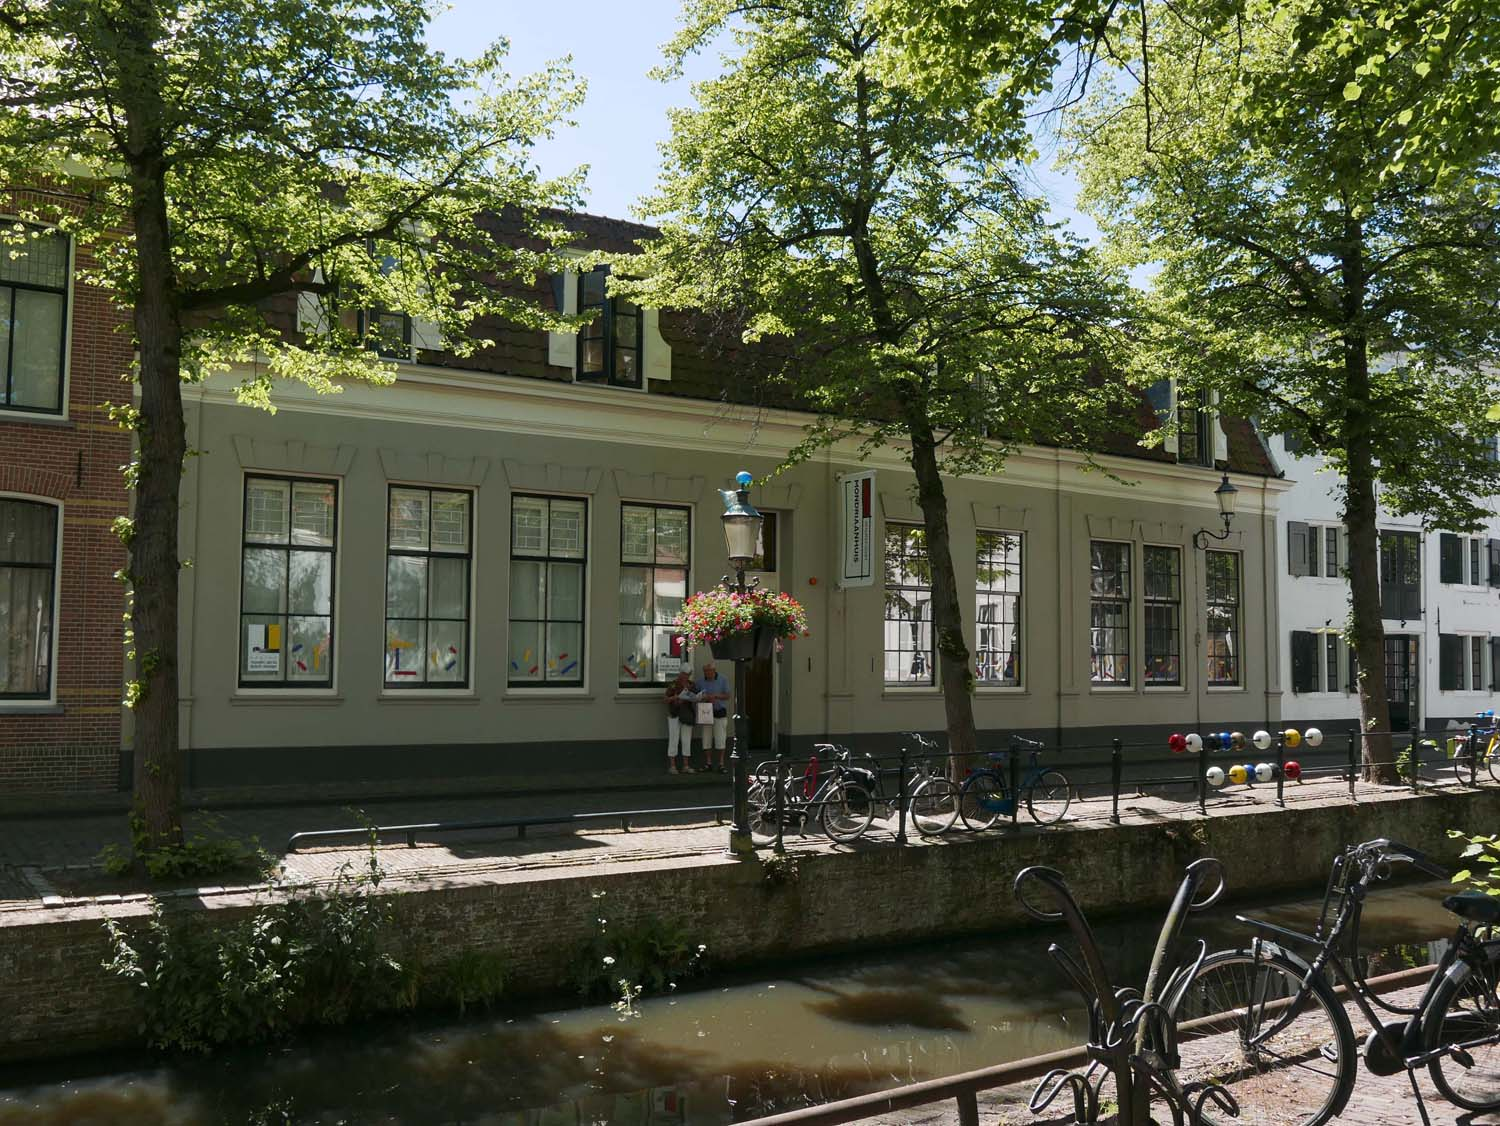 Piet Mondrian's birthplace